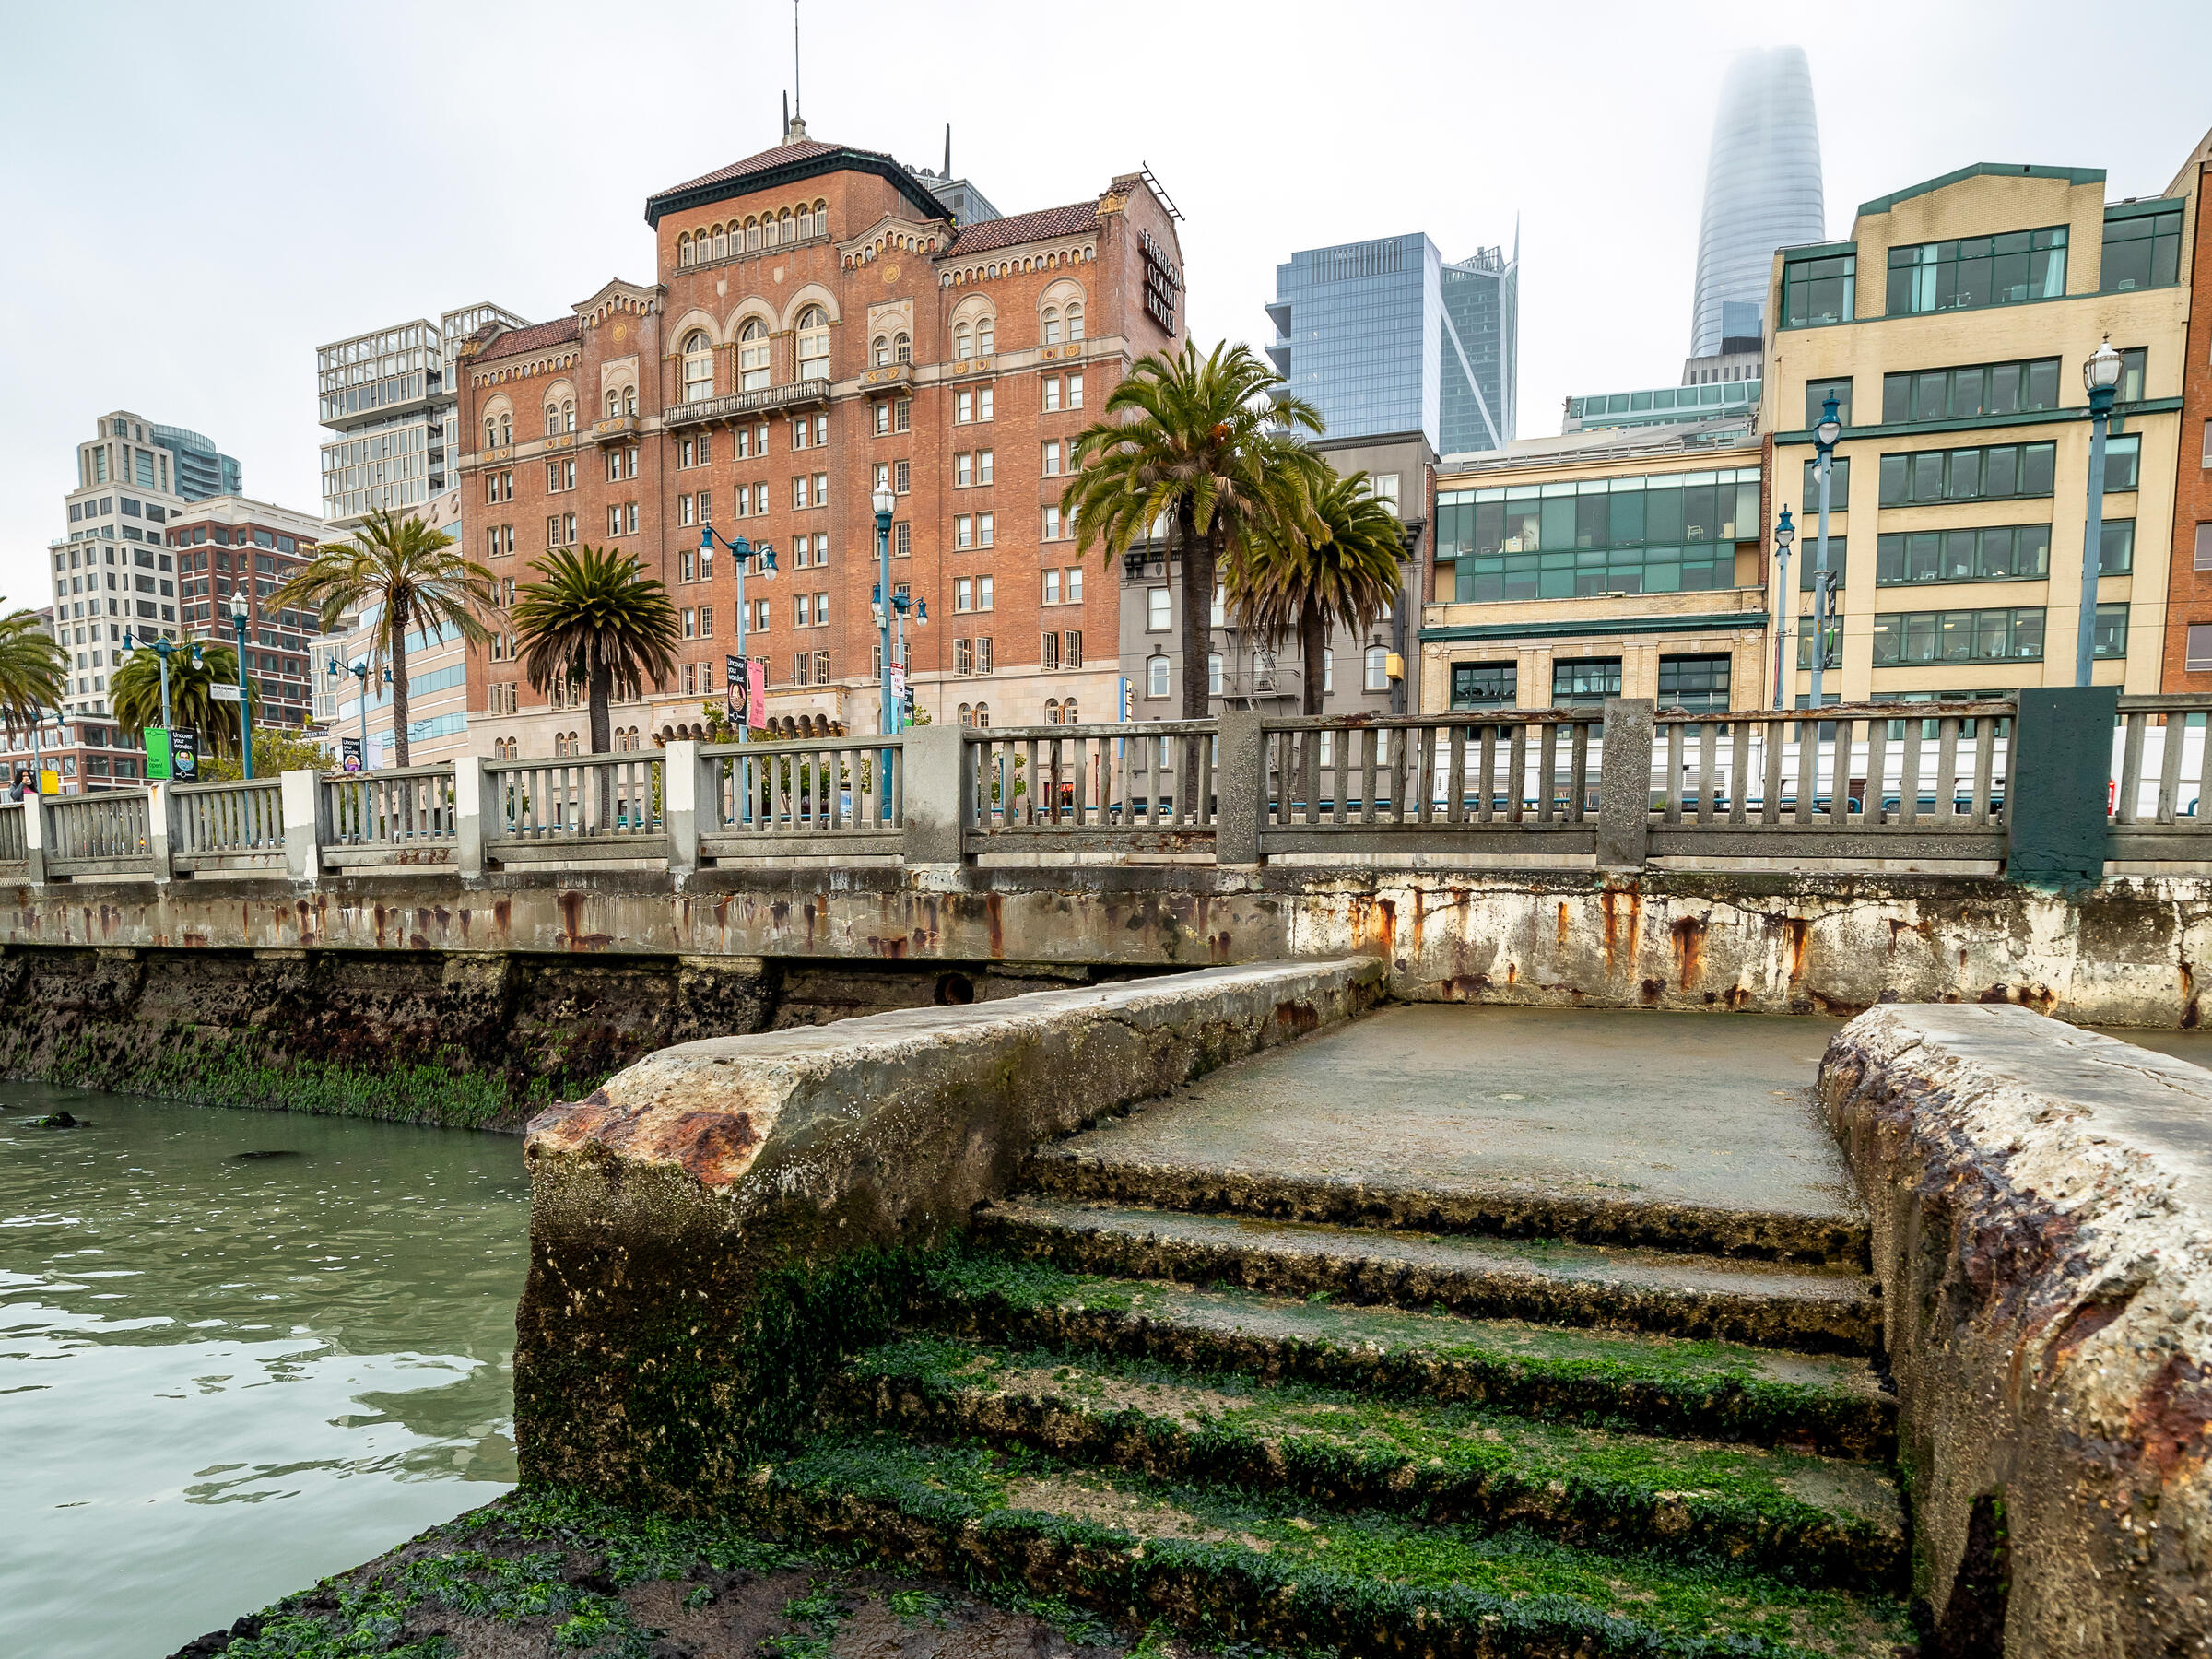 Wet steps overgrown with algae lead from San Francisco Bay up to a concrete fence—the Embarcadero Seawall along the San Francisco business district. The overgrown algae signals how frequently the infrastructure floods due to sea level rise. A row of high-rise buildings and palm trees are in the background behind the seawall.